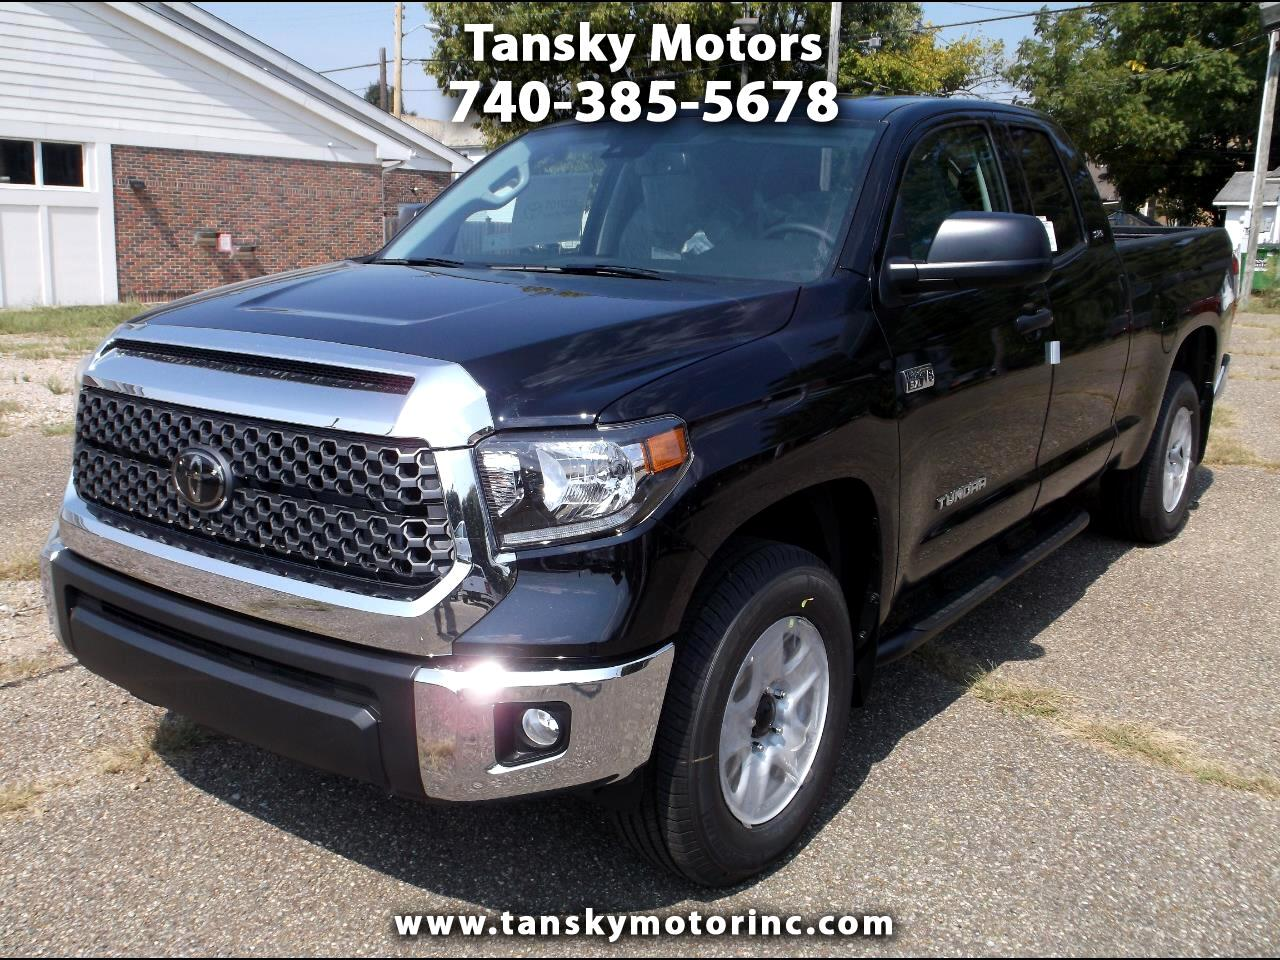 2020 Toyota Tundra 4WD SR5 Double Cab 6.5' Bed 5.7L (Natl)